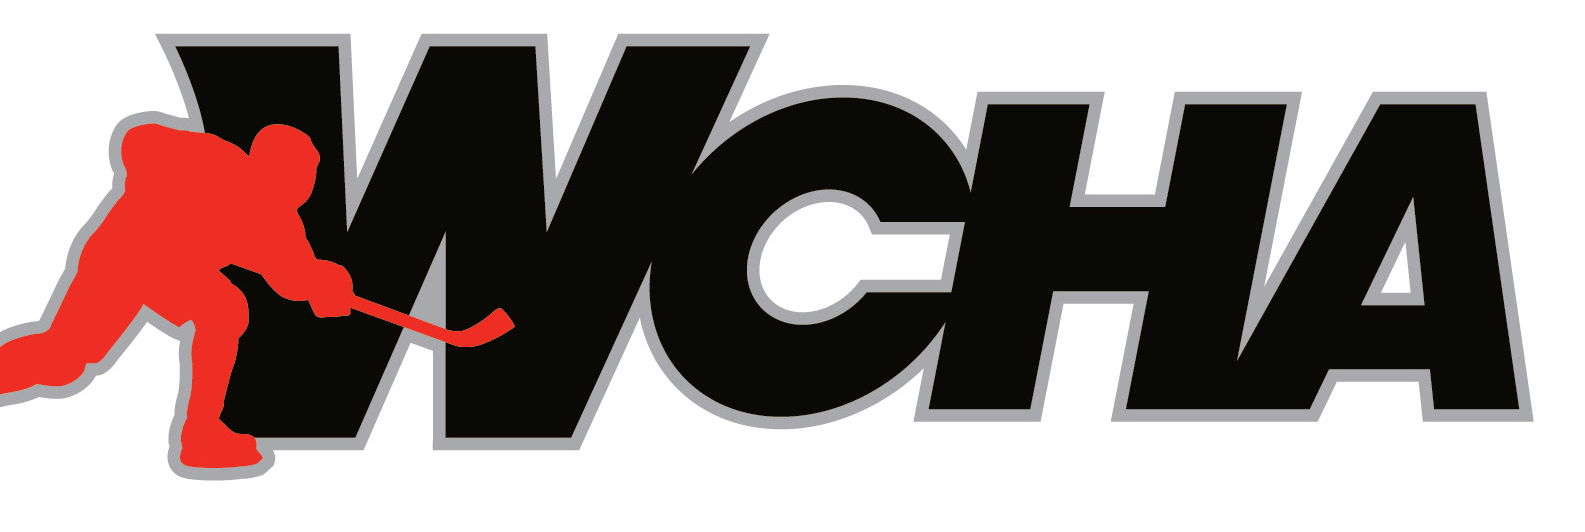 WCHA Head Coach's Contracts for 2015-2016 Season